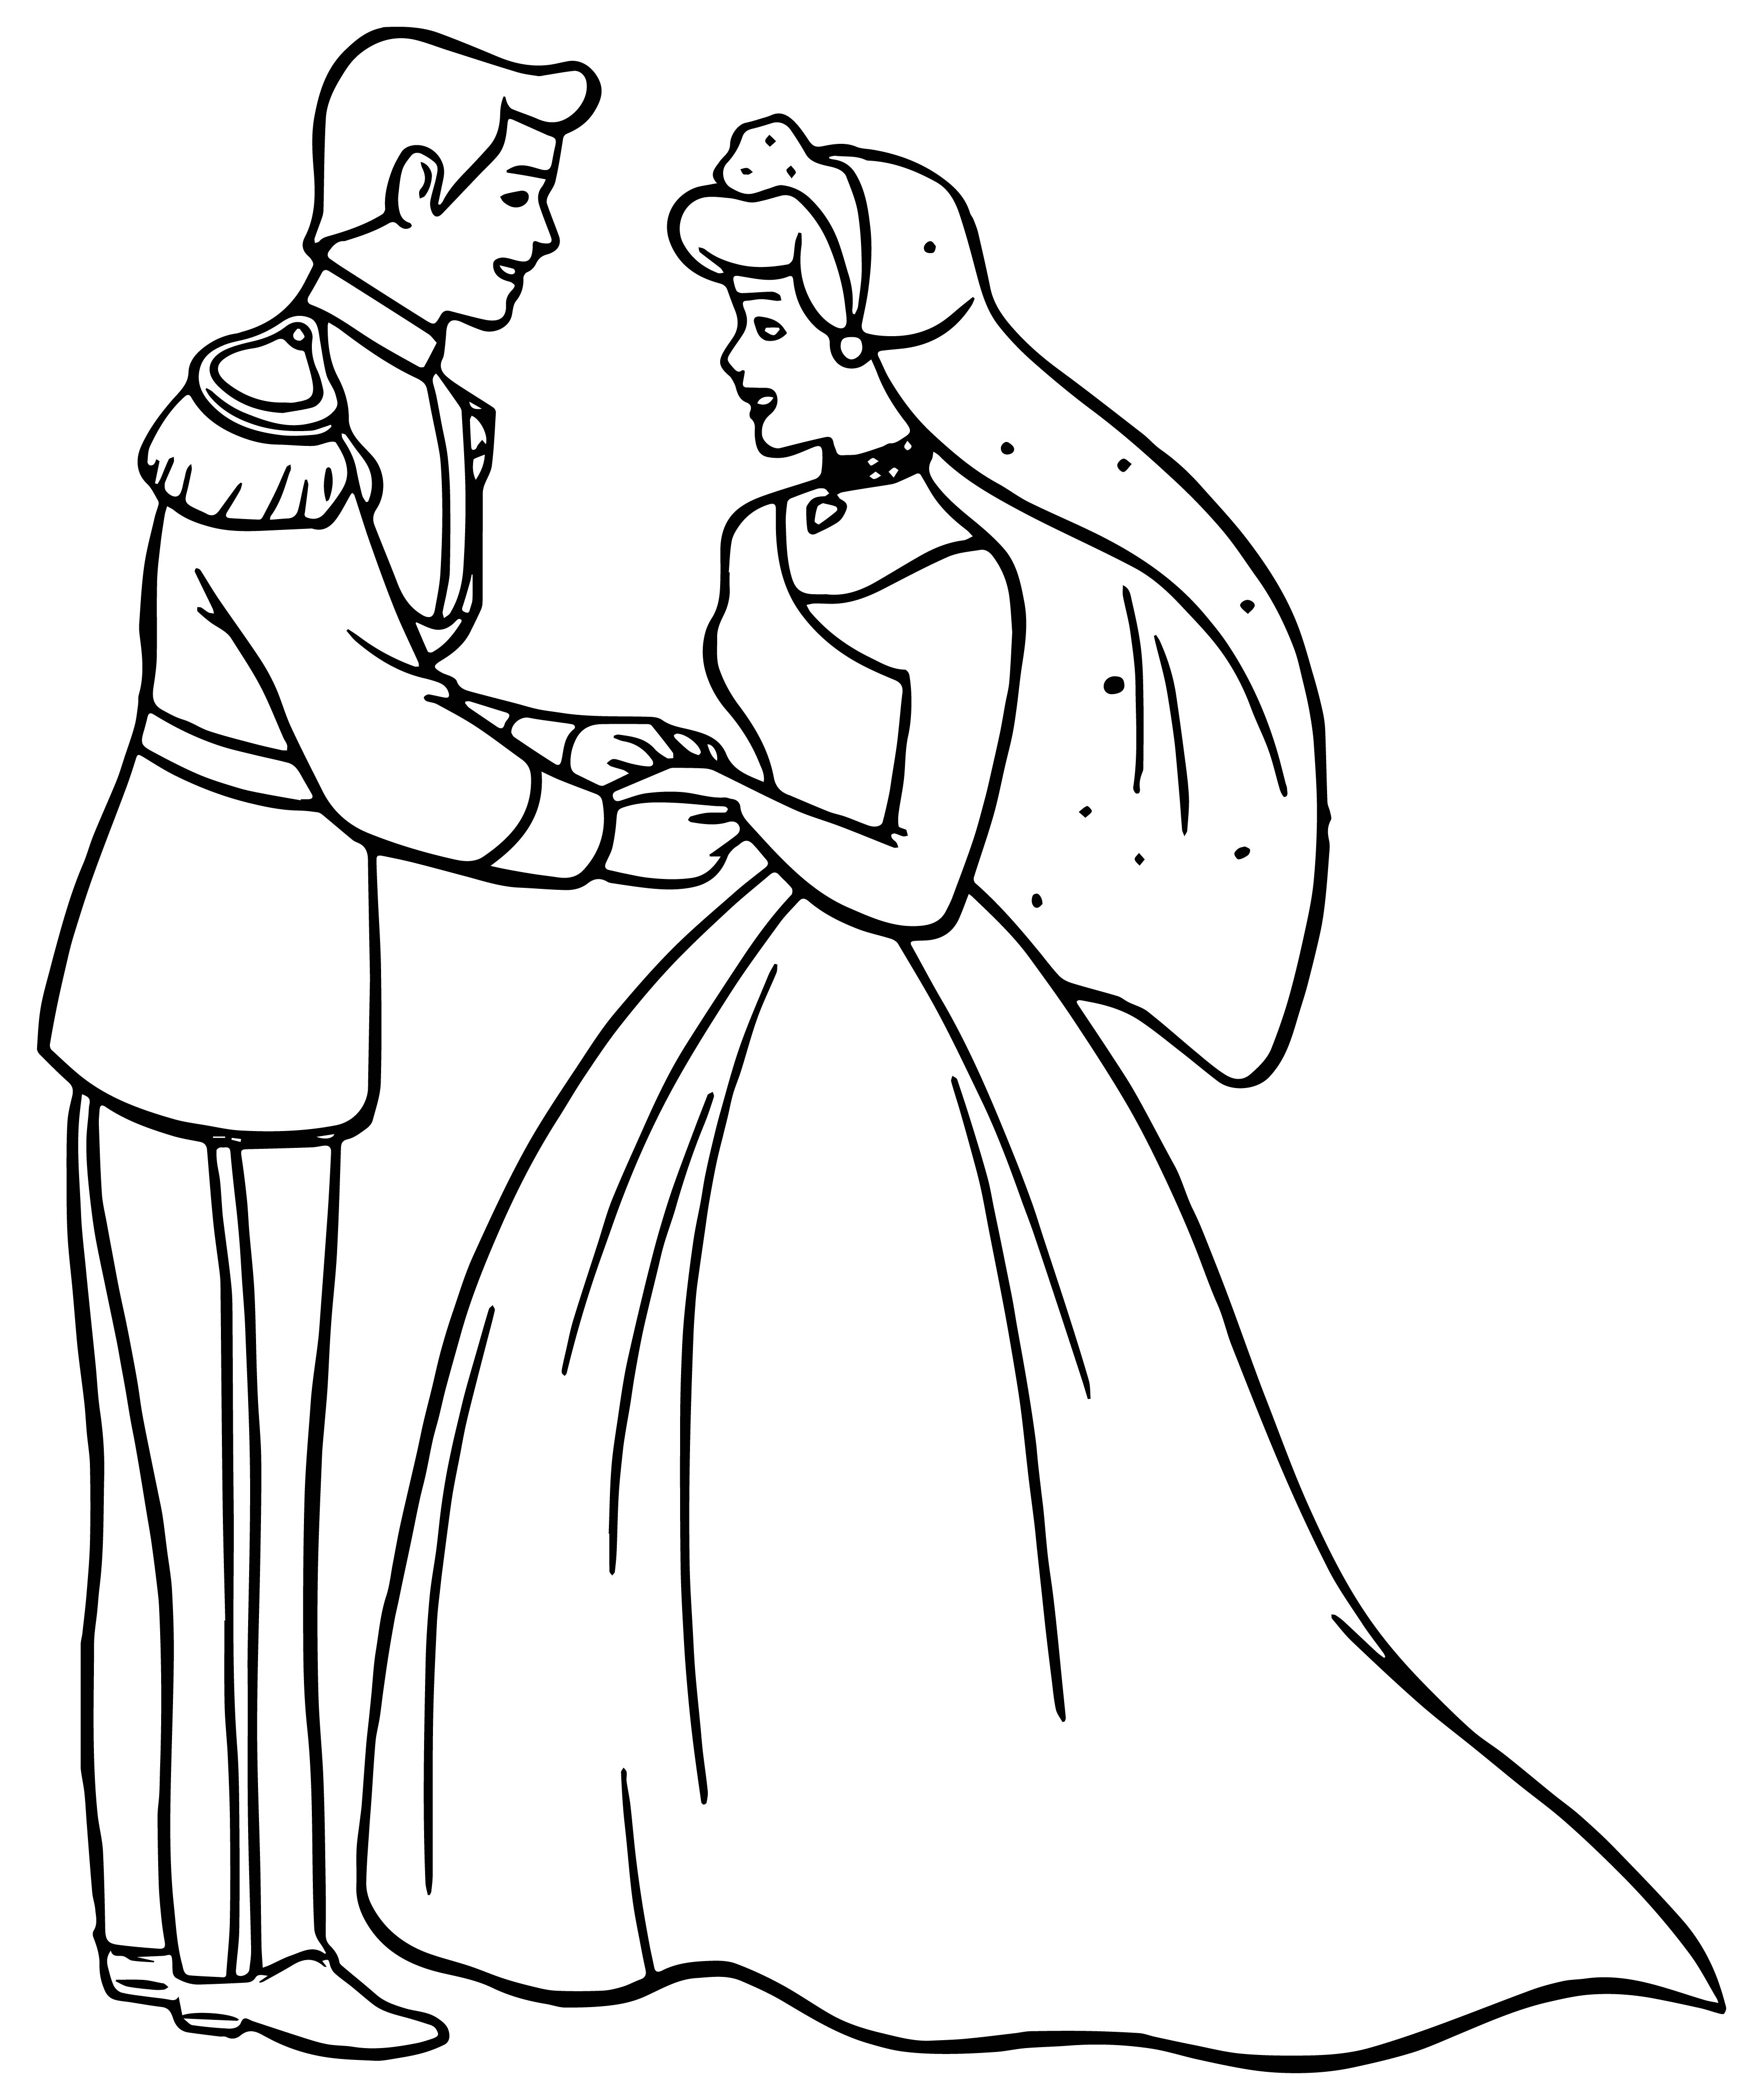 Cinderella And Prince Charming Wedding Dancing Coloring